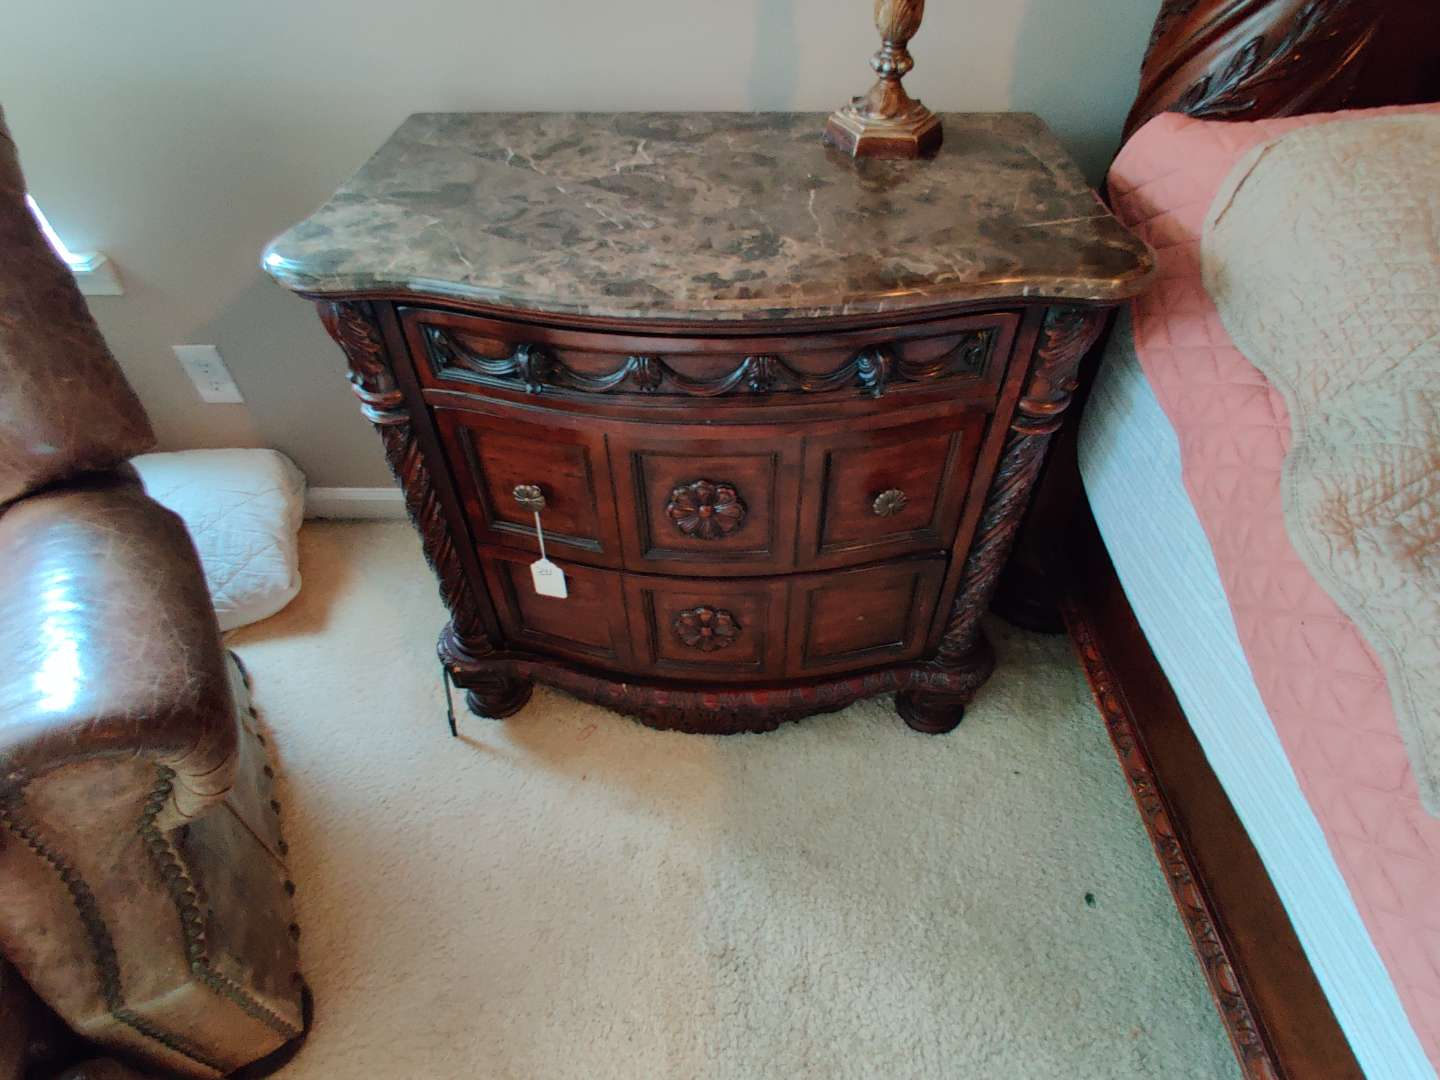 241 marble top night stand 34 in wide 33 in tall missing two knobs